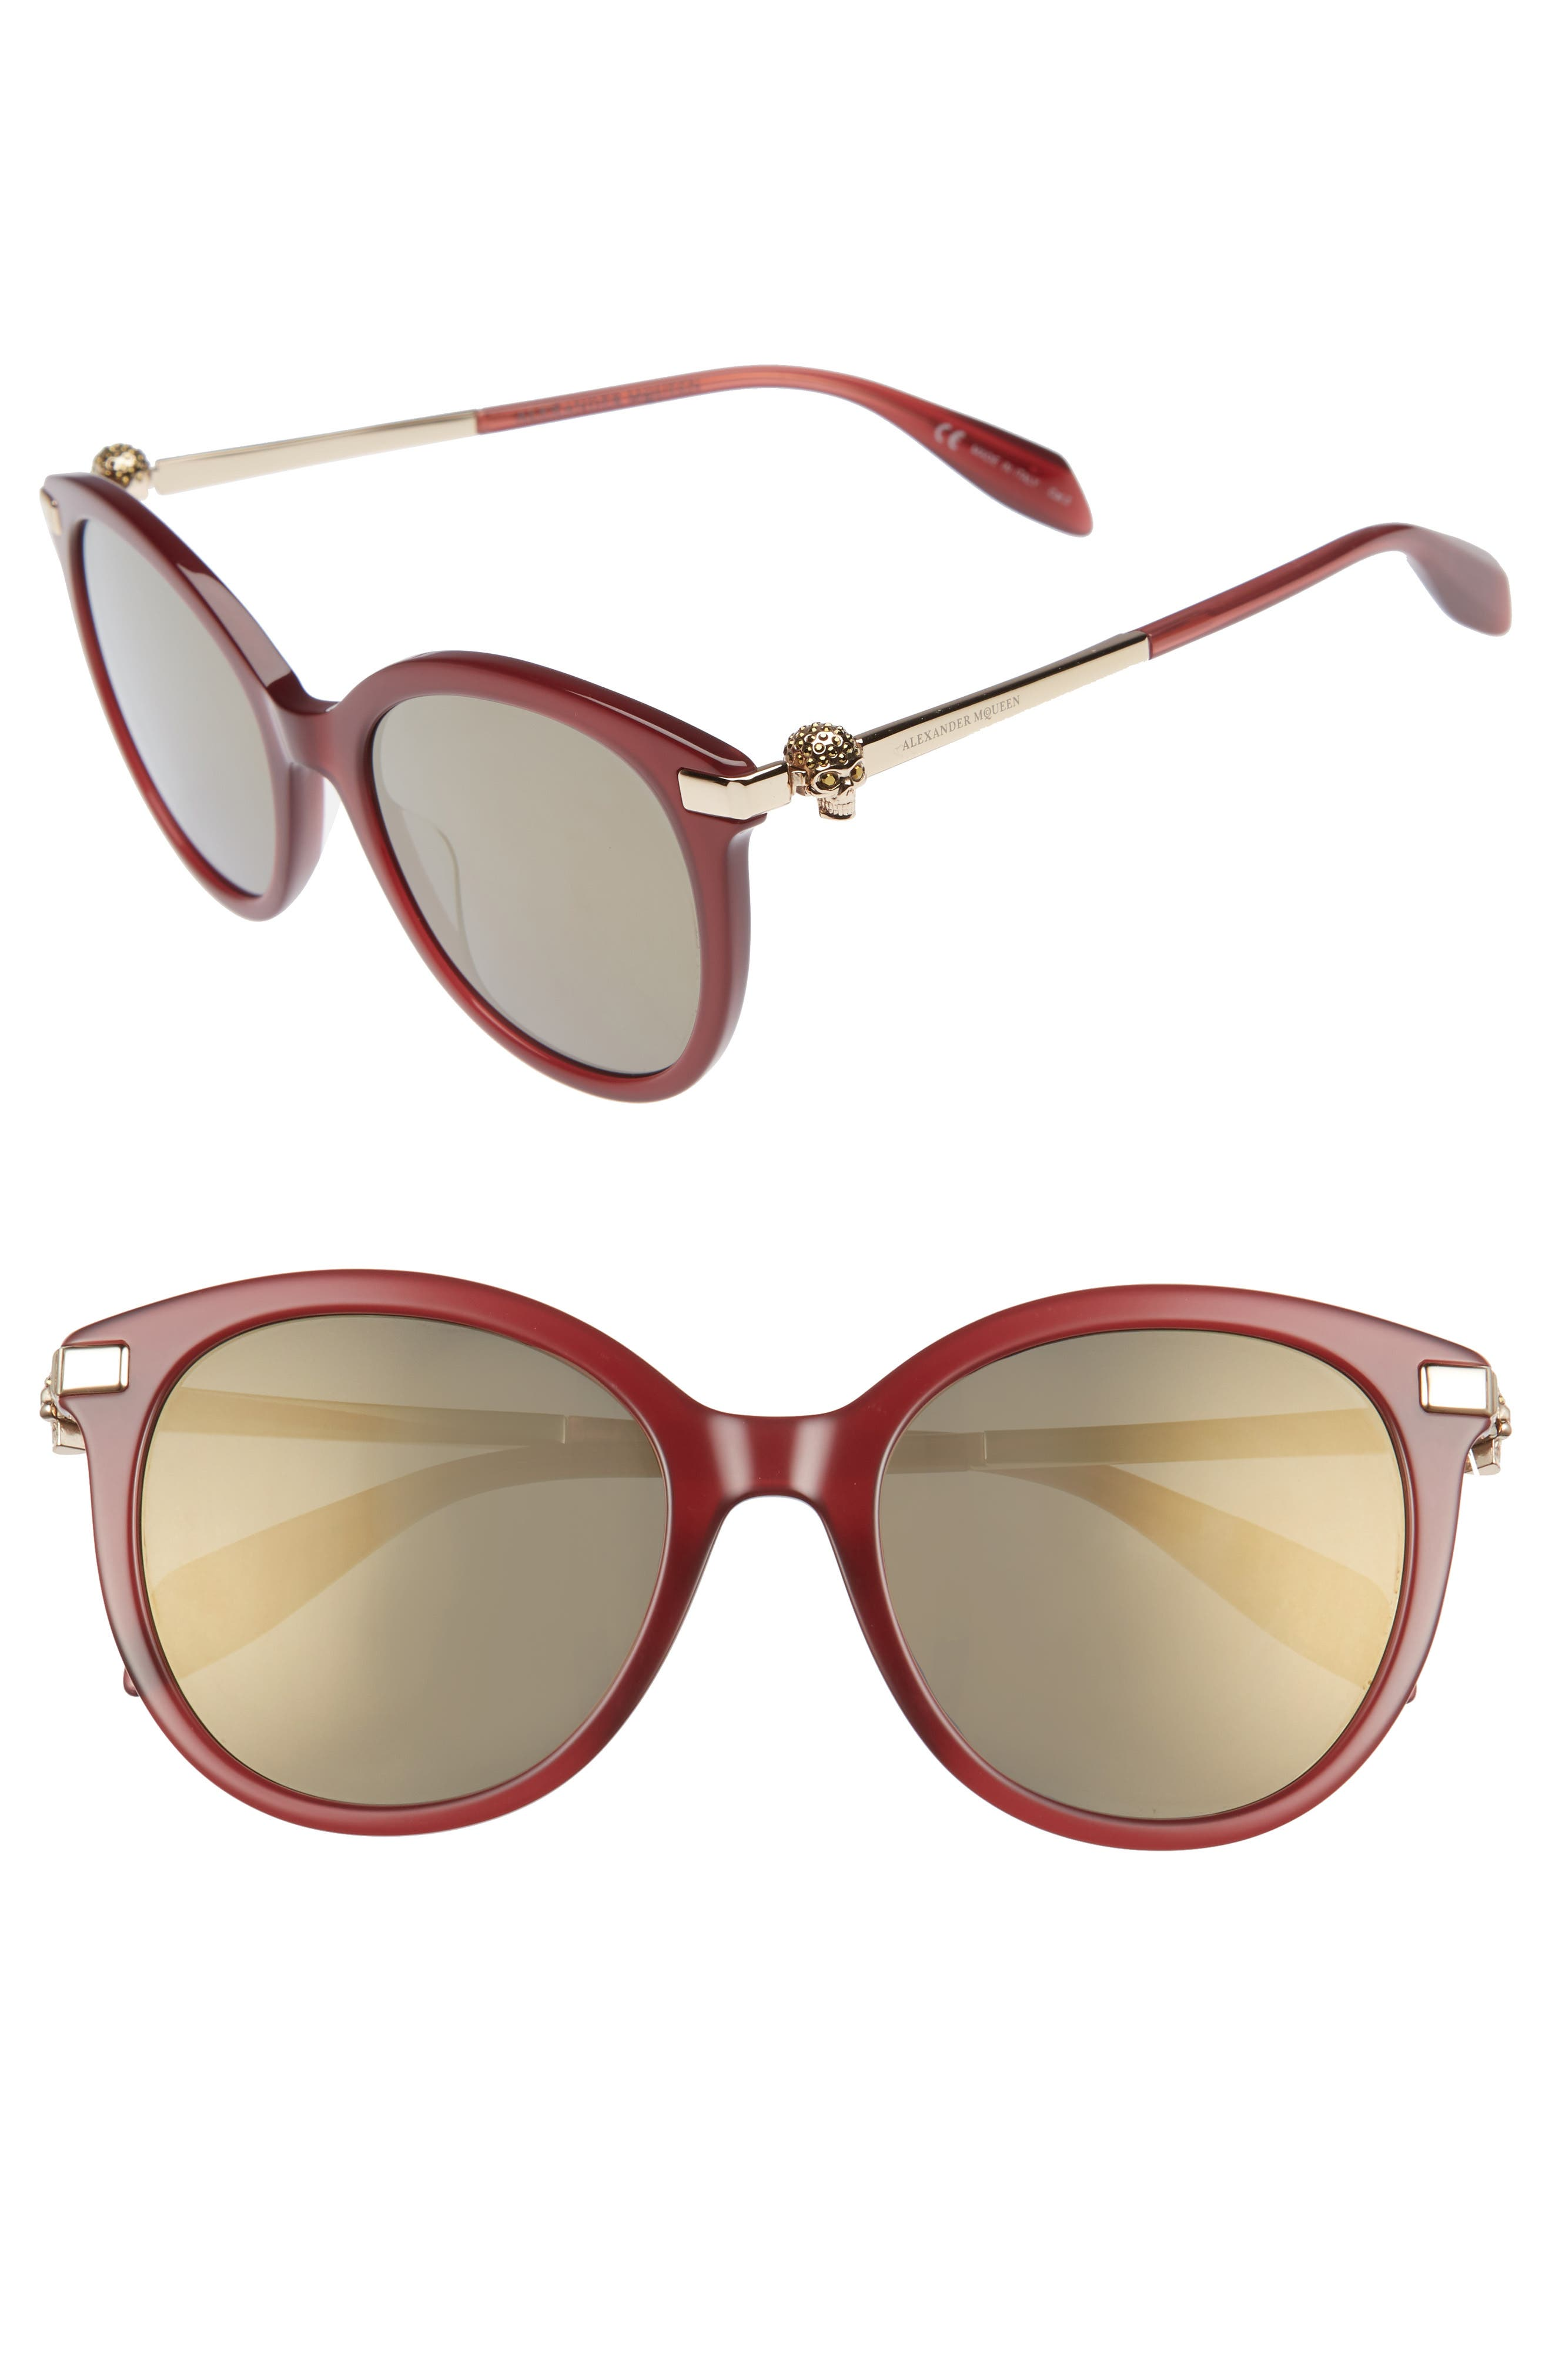 53mm Rounded Cat Eye Sunglasses,                         Main,                         color, BURGUNDY